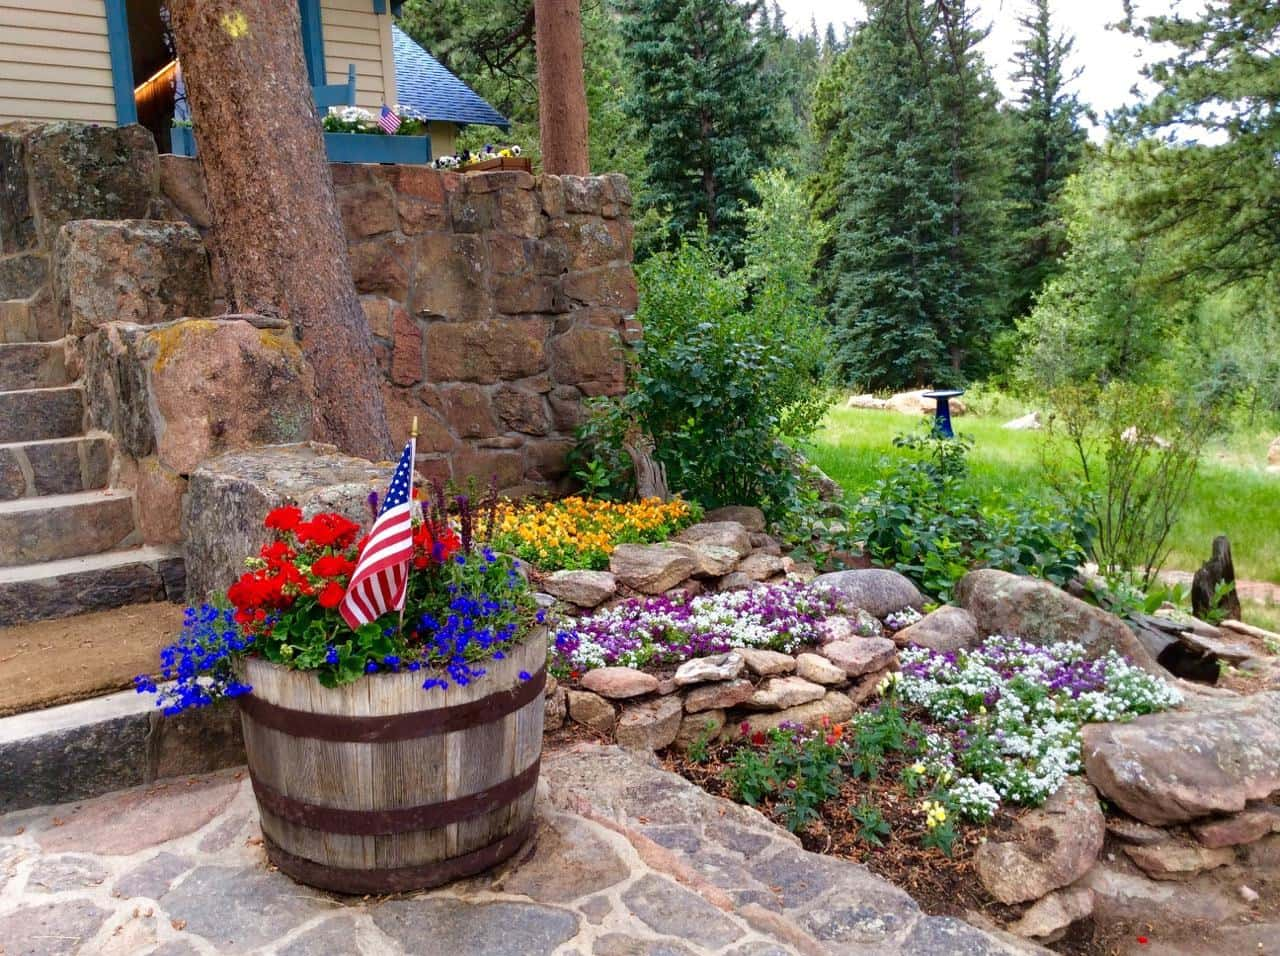 flower beds and pots at the Inn